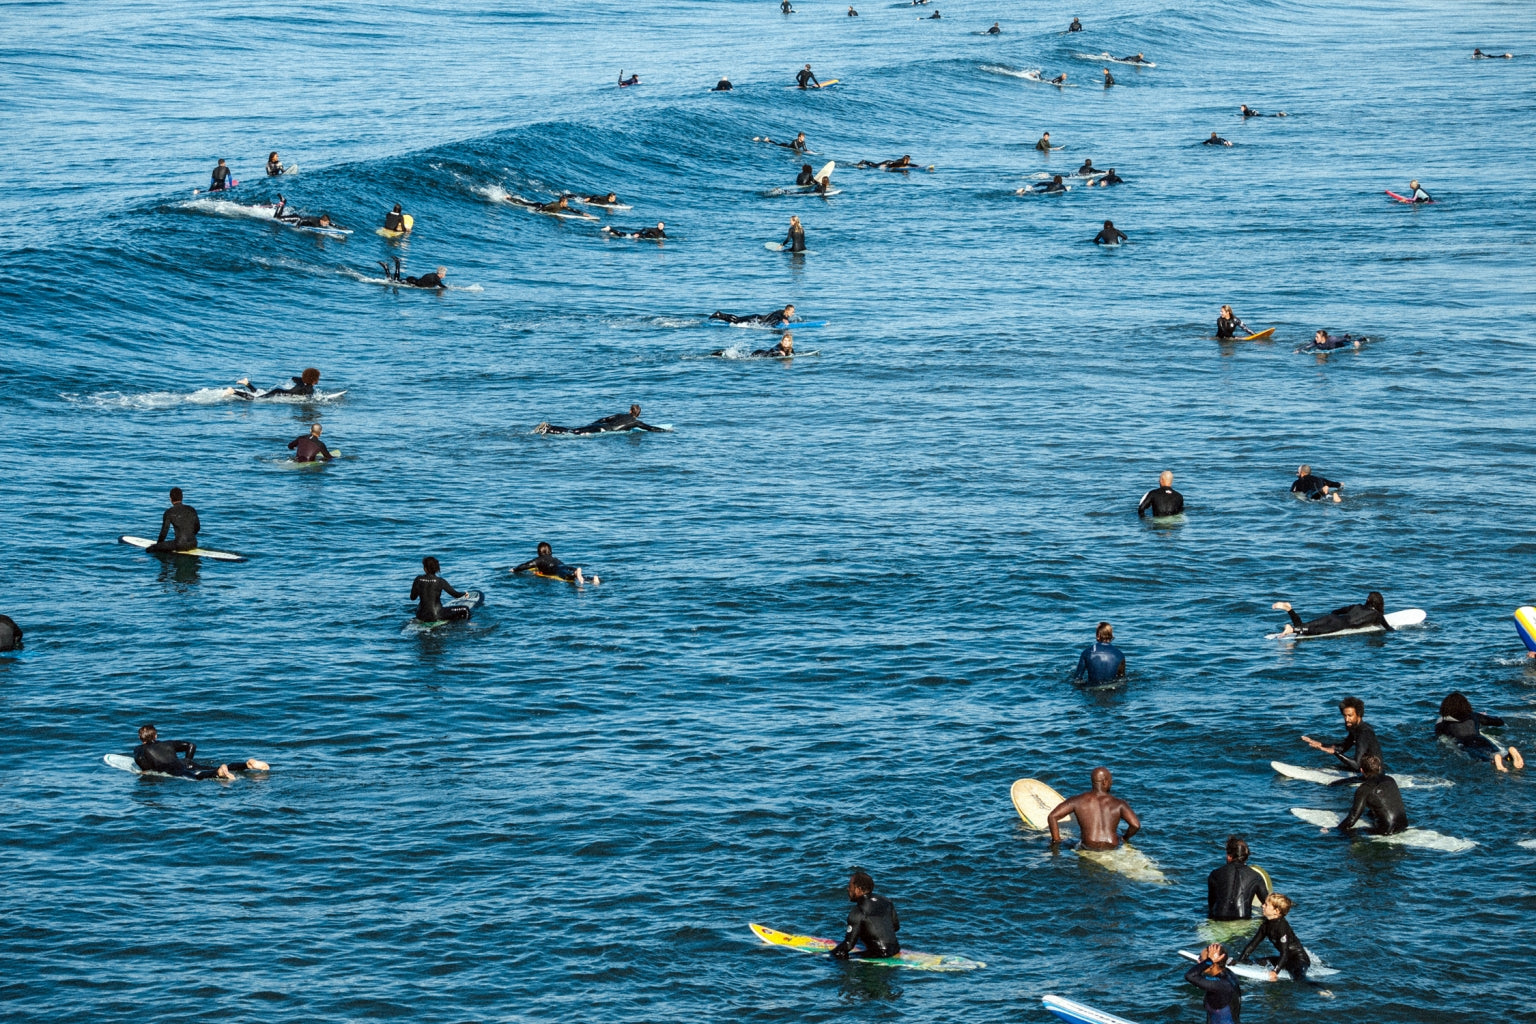 Every race and identity are present in the city of Los Angeles – its beaches and surf lineups should be no different.